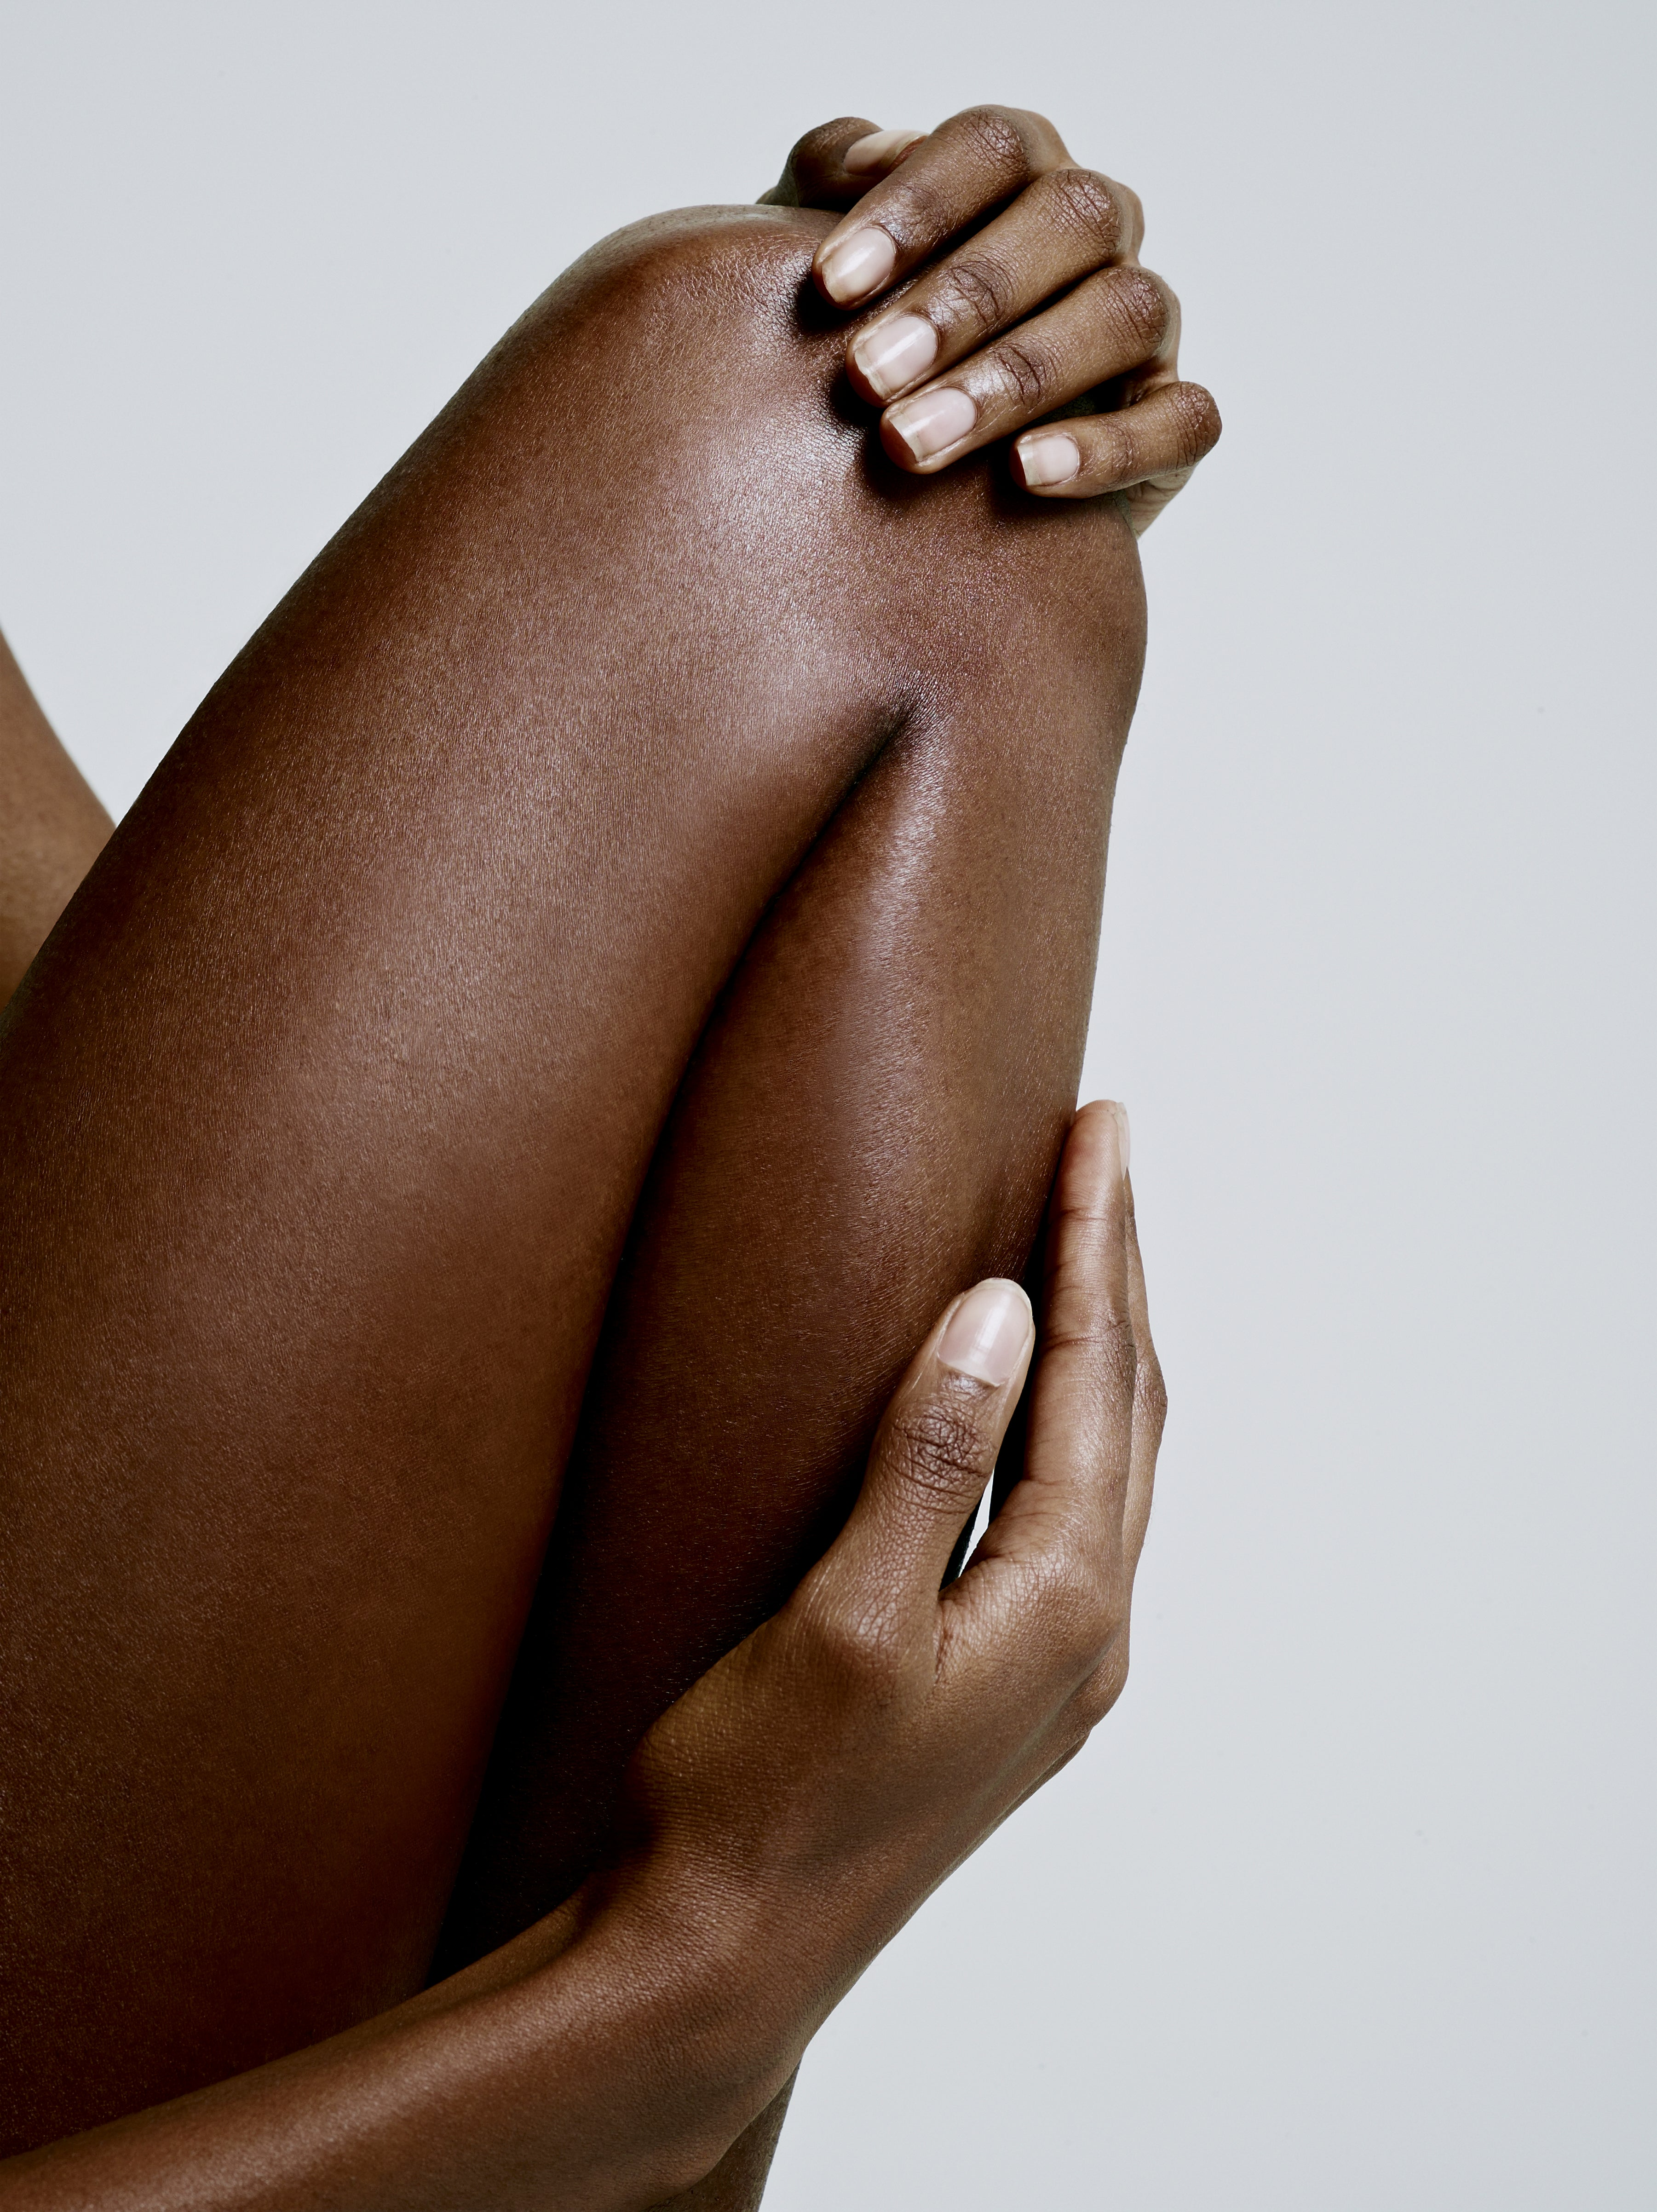 11 Things People With Eczema Want You To Know